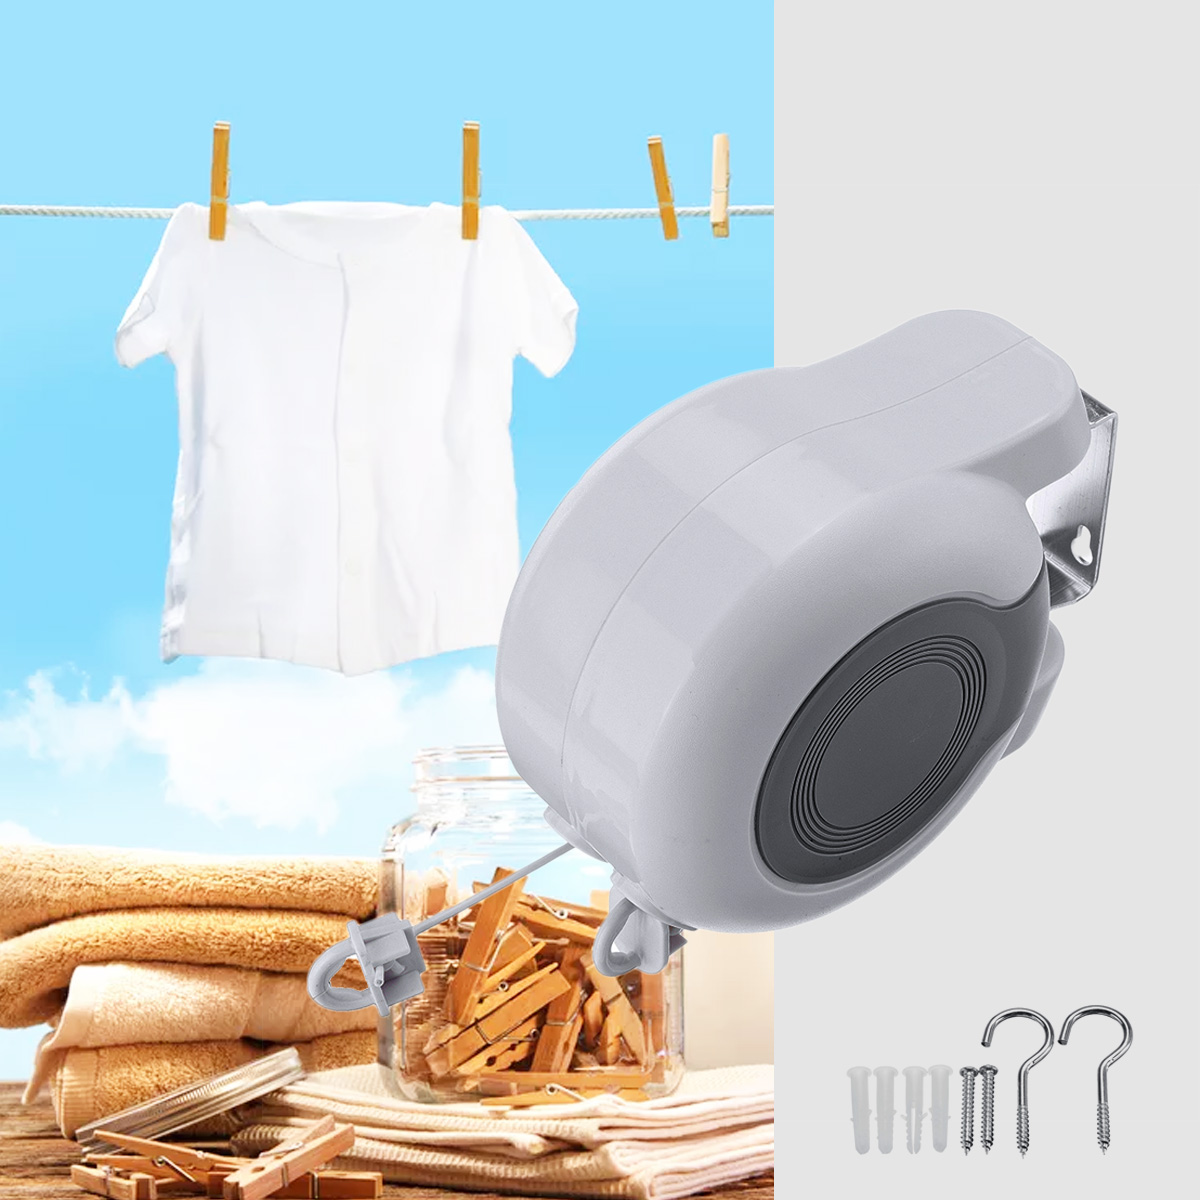 13M Retractable Clothesline Indoor Outdoor Laundry Hanger Clothes Dryer Organiser Clothes Drying Rack Rope Wire13M Retractable Clothesline Indoor Outdoor Laundry Hanger Clothes Dryer Organiser Clothes Drying Rack Rope Wire